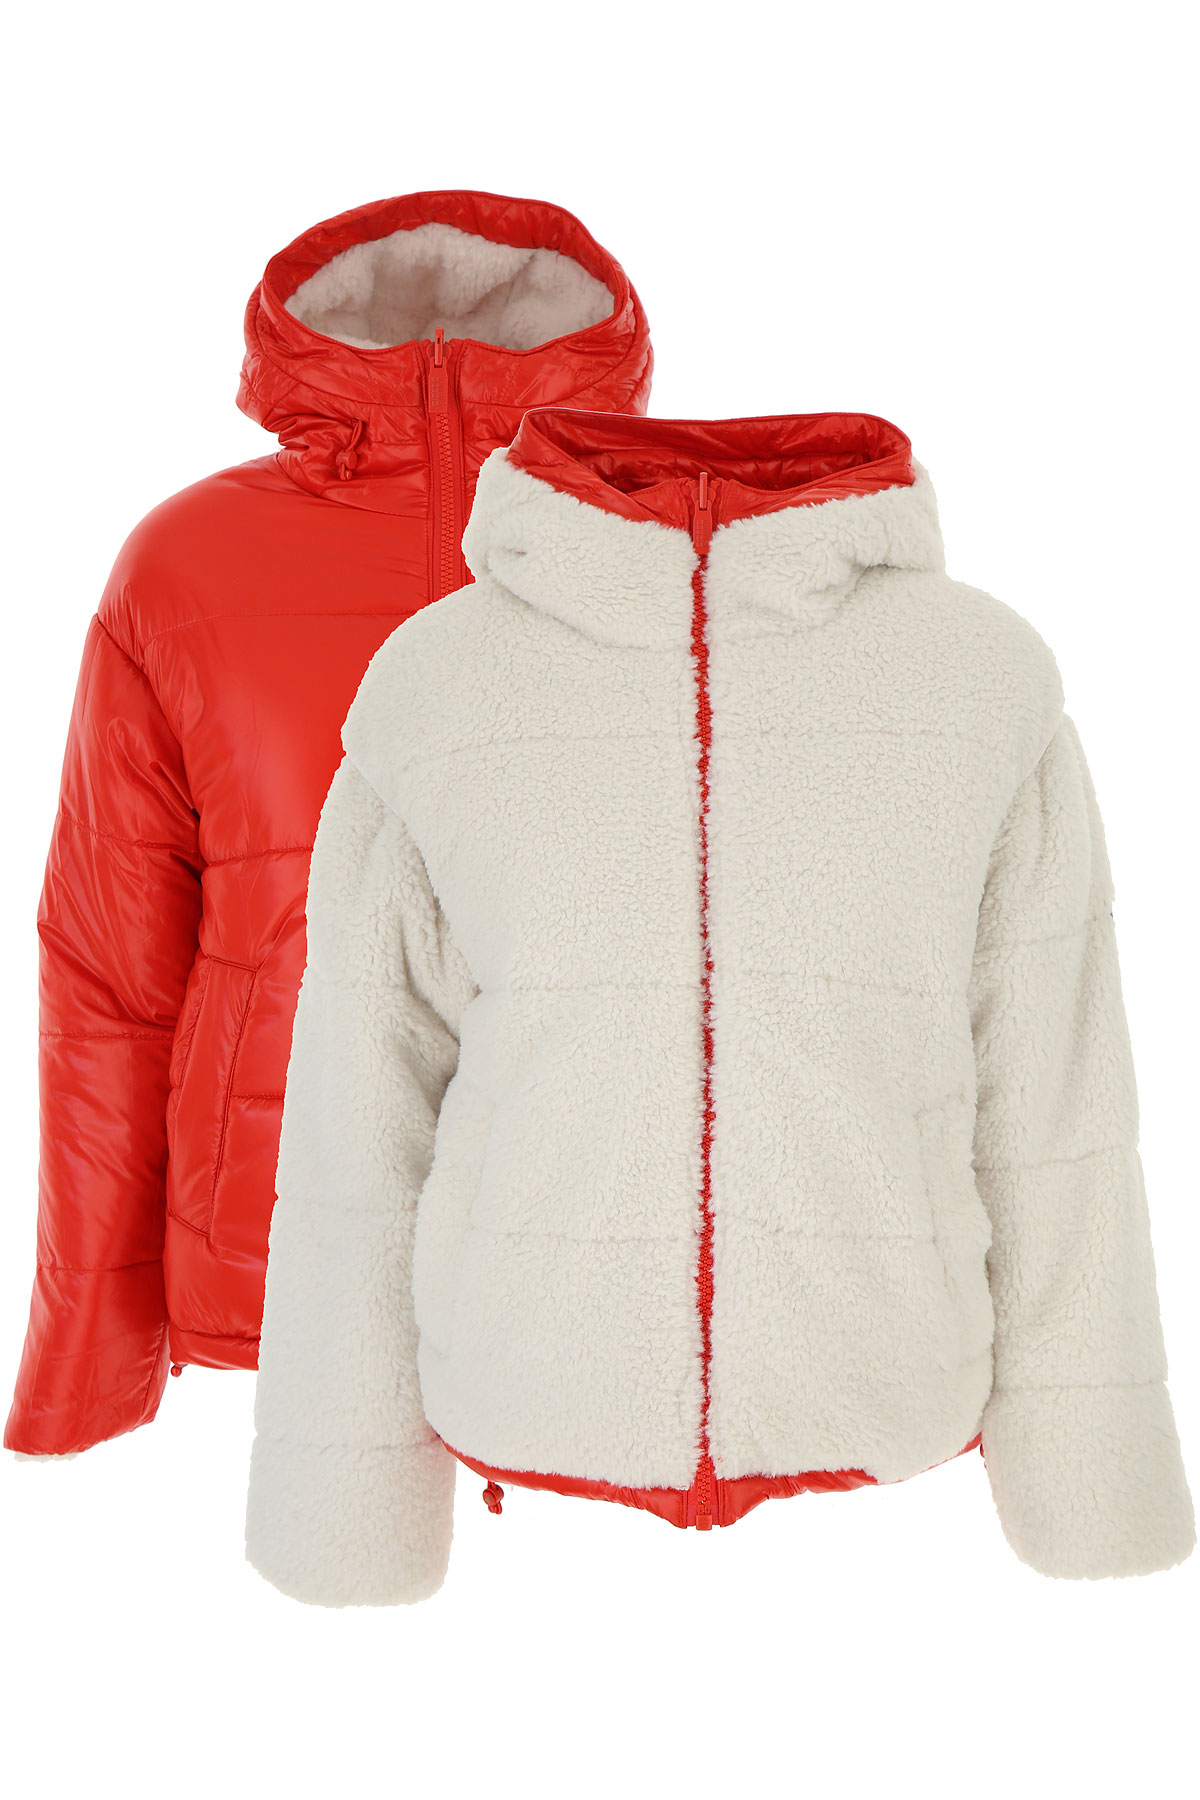 Ciesse Piumini Down Jacket for Women, Puffer Ski Jacket On Sale, White, polyester, 2019, 4 6